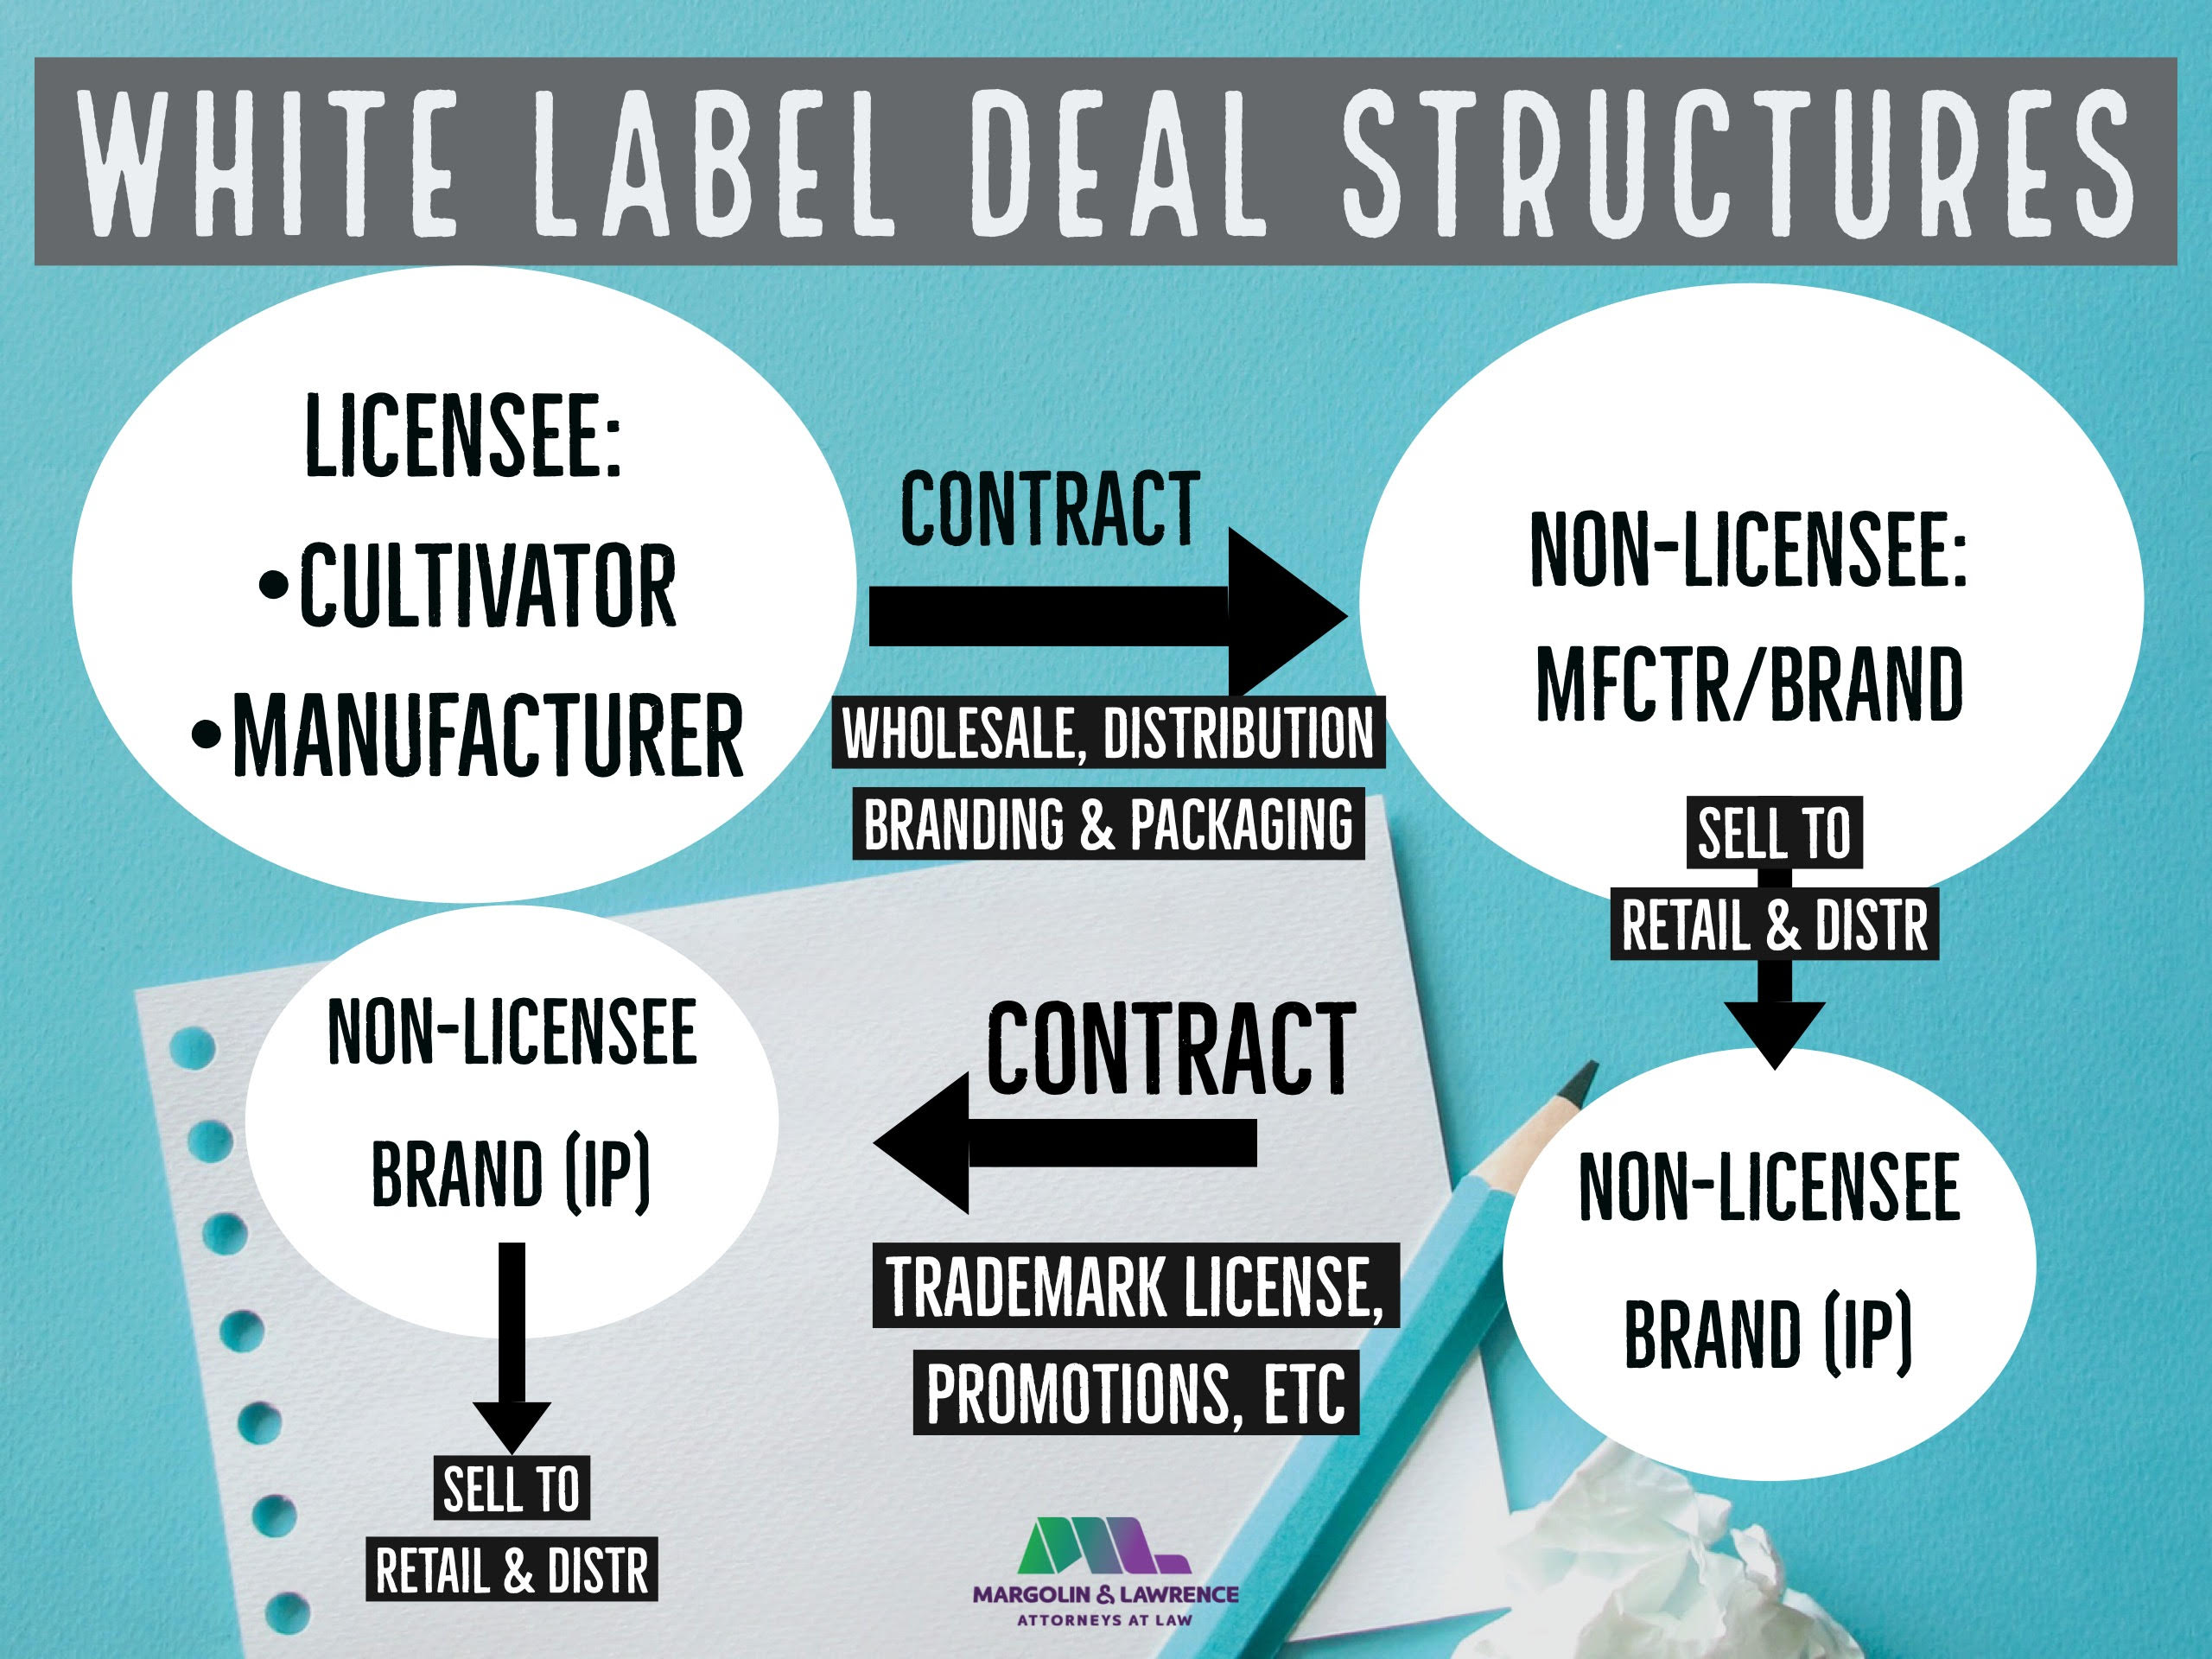 How Would a White Labeling Ban Affect Cannabis Business?